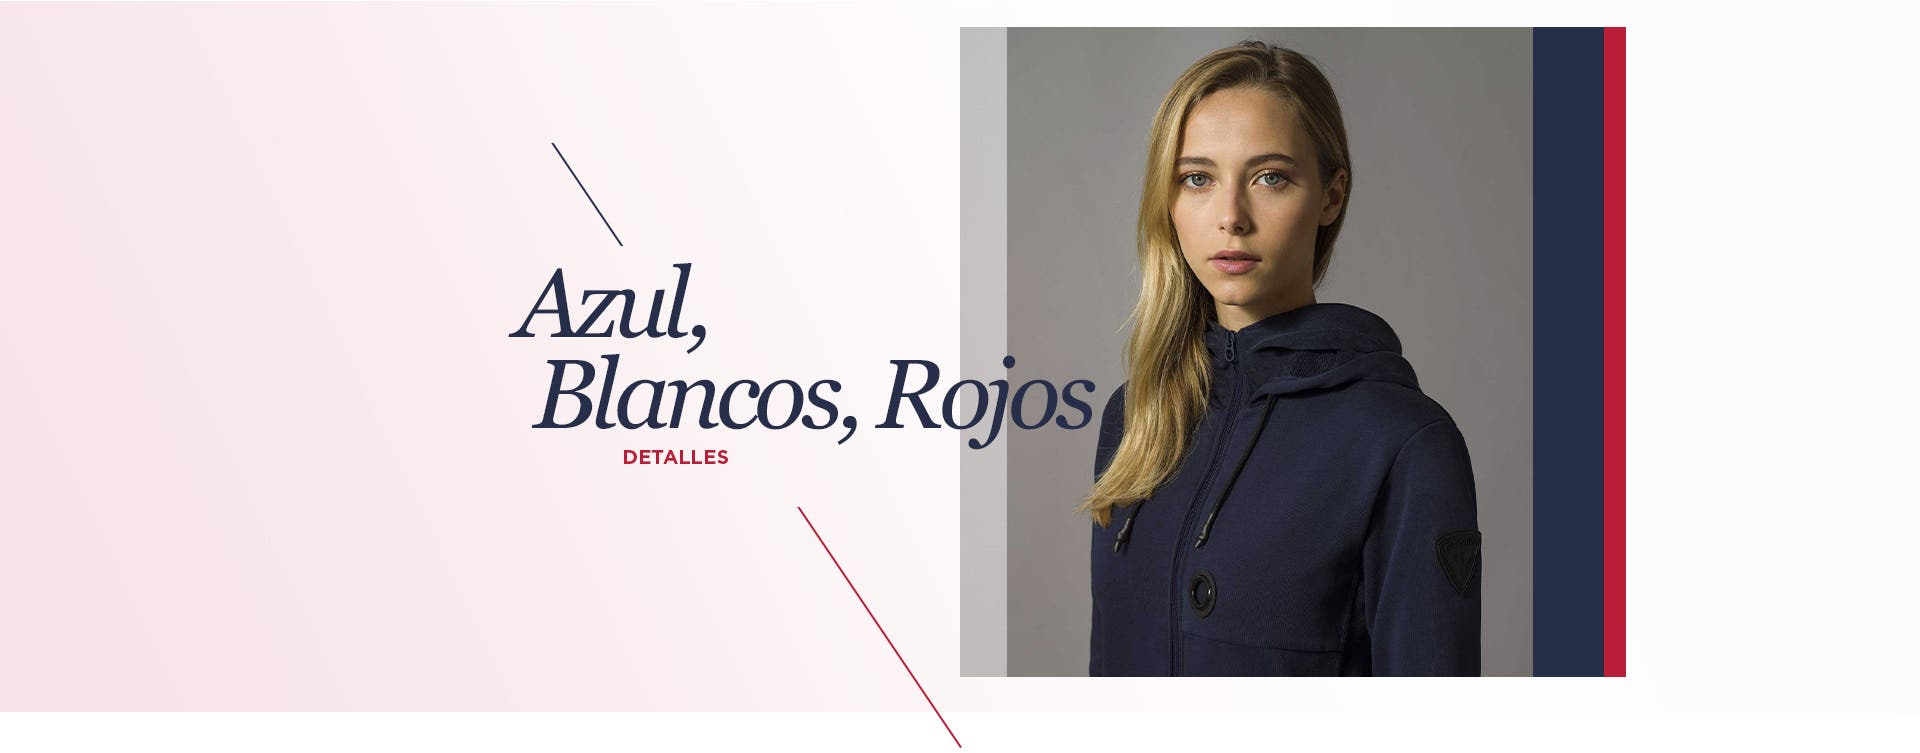 Rossignol Lookbook